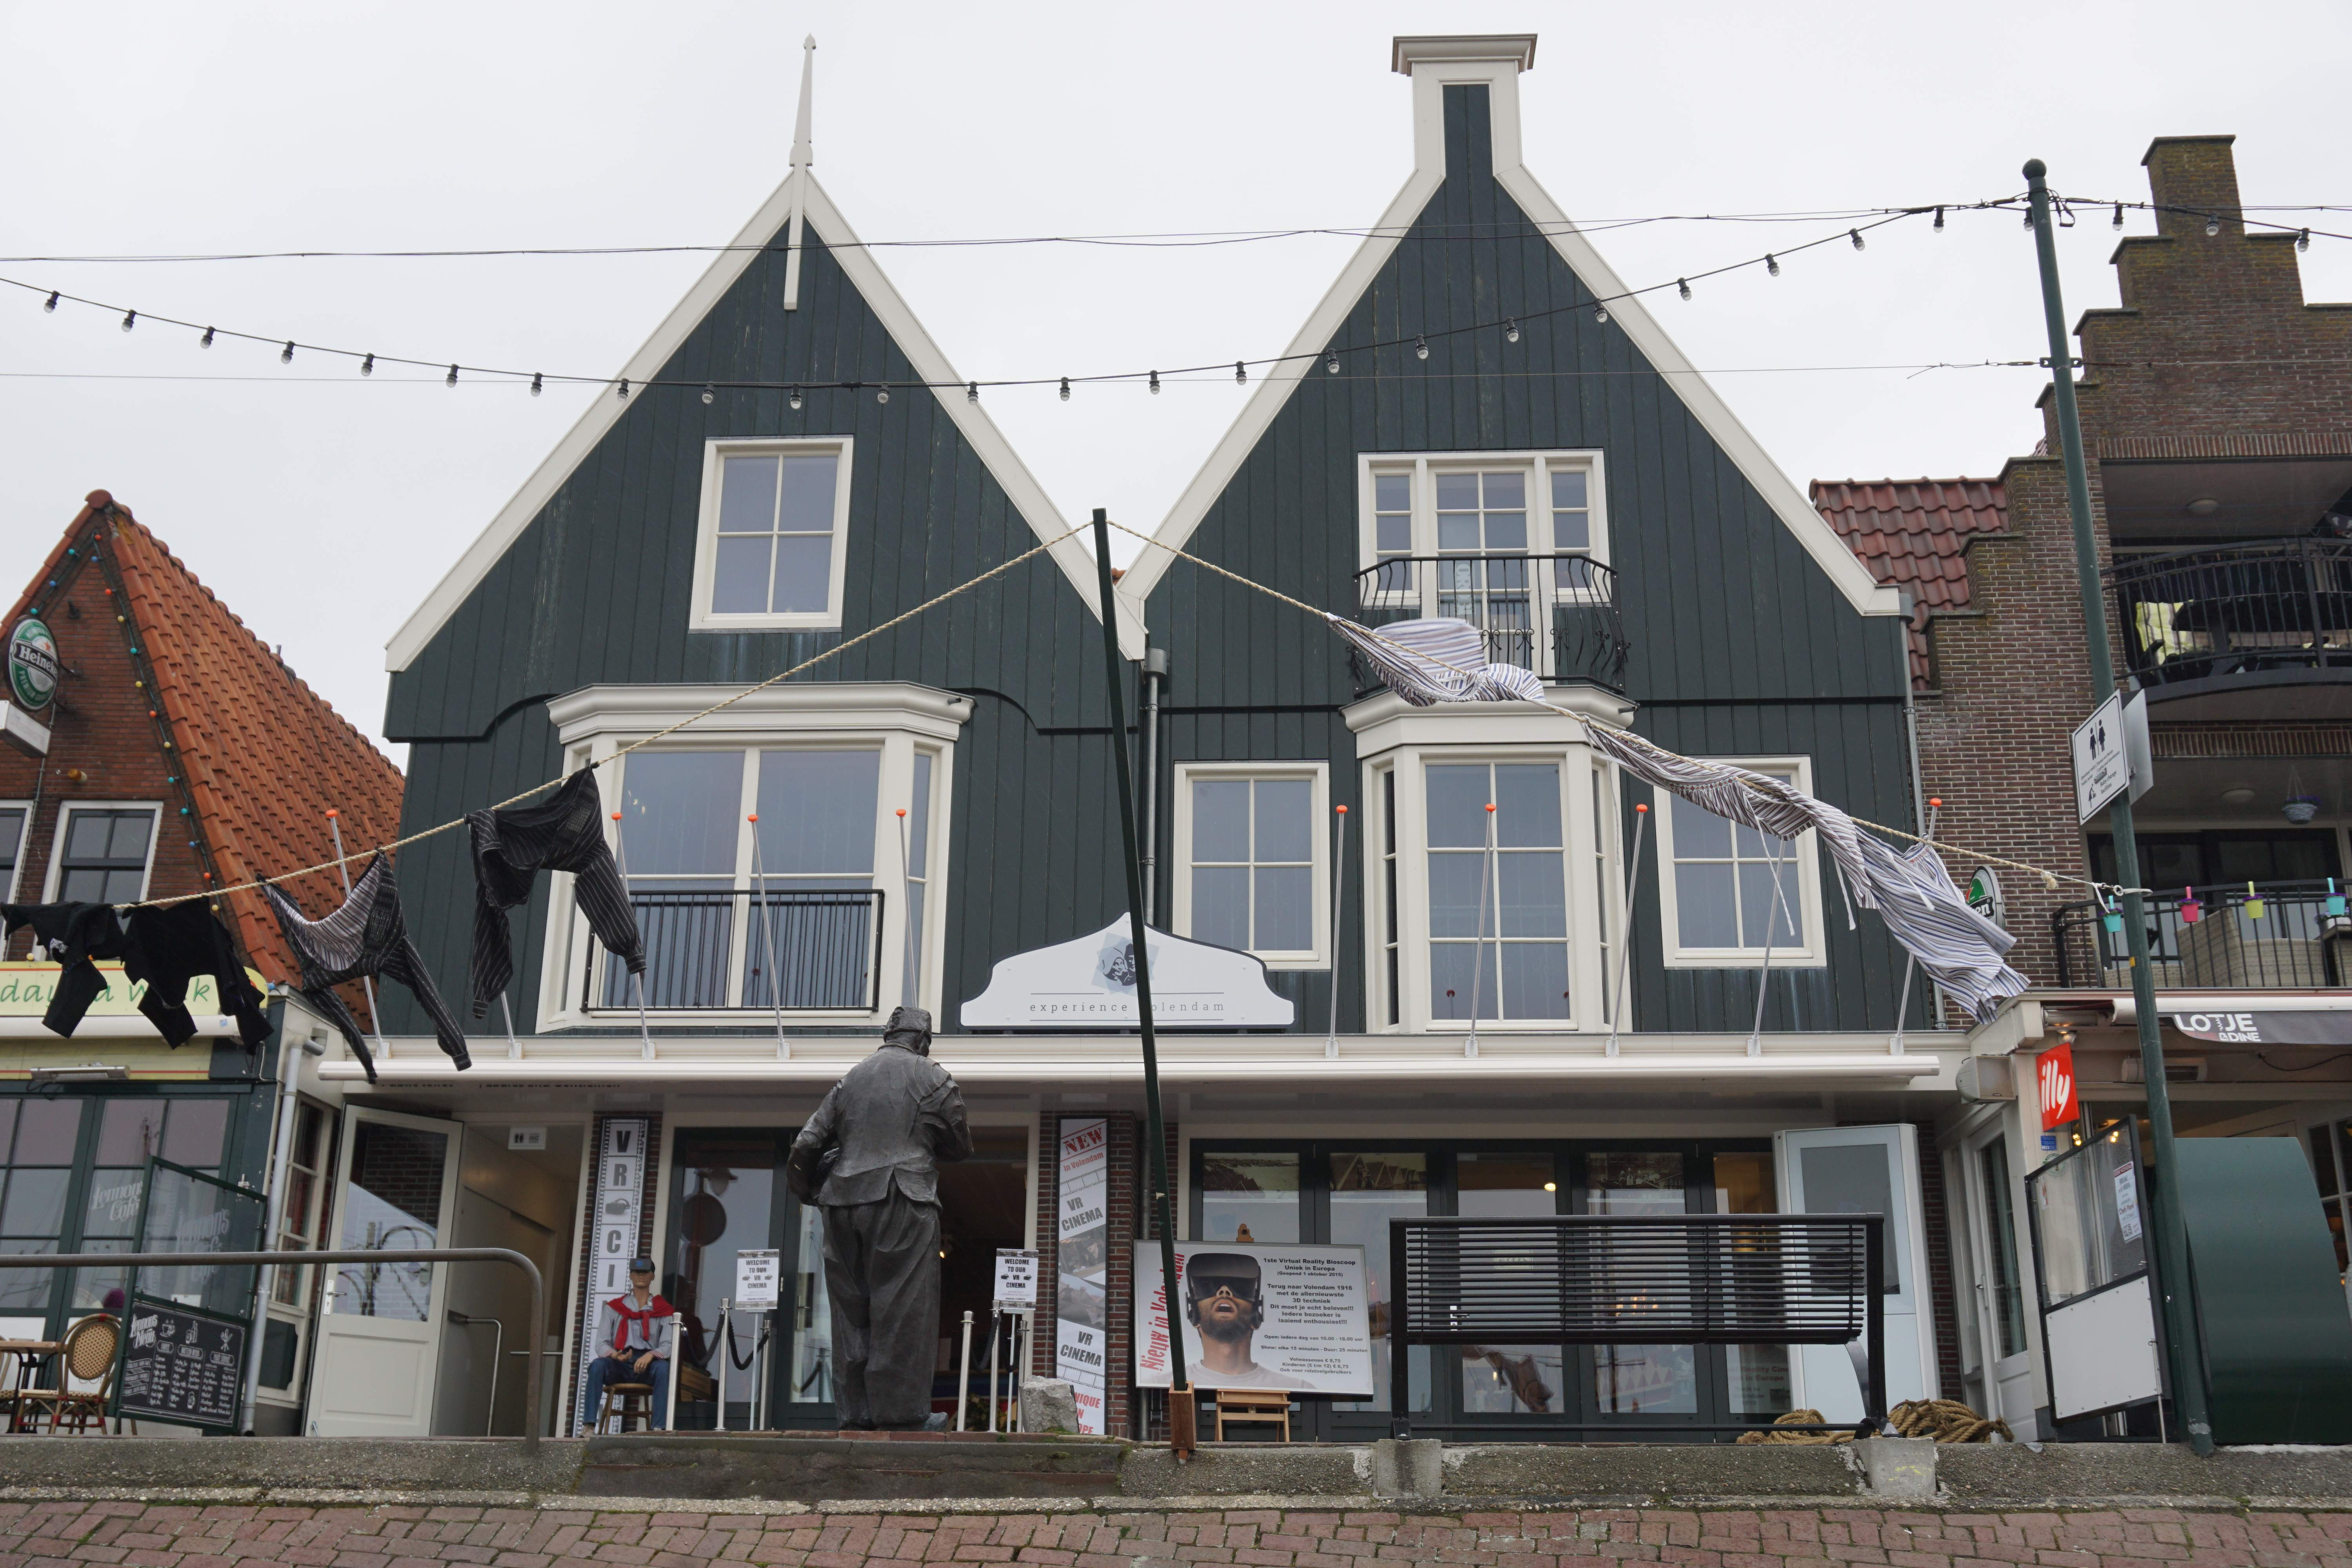 Volendam Experience (former cafe Hemeltje) by Elena Finariu (The Scars of the 2001 Tragedy Volendam)